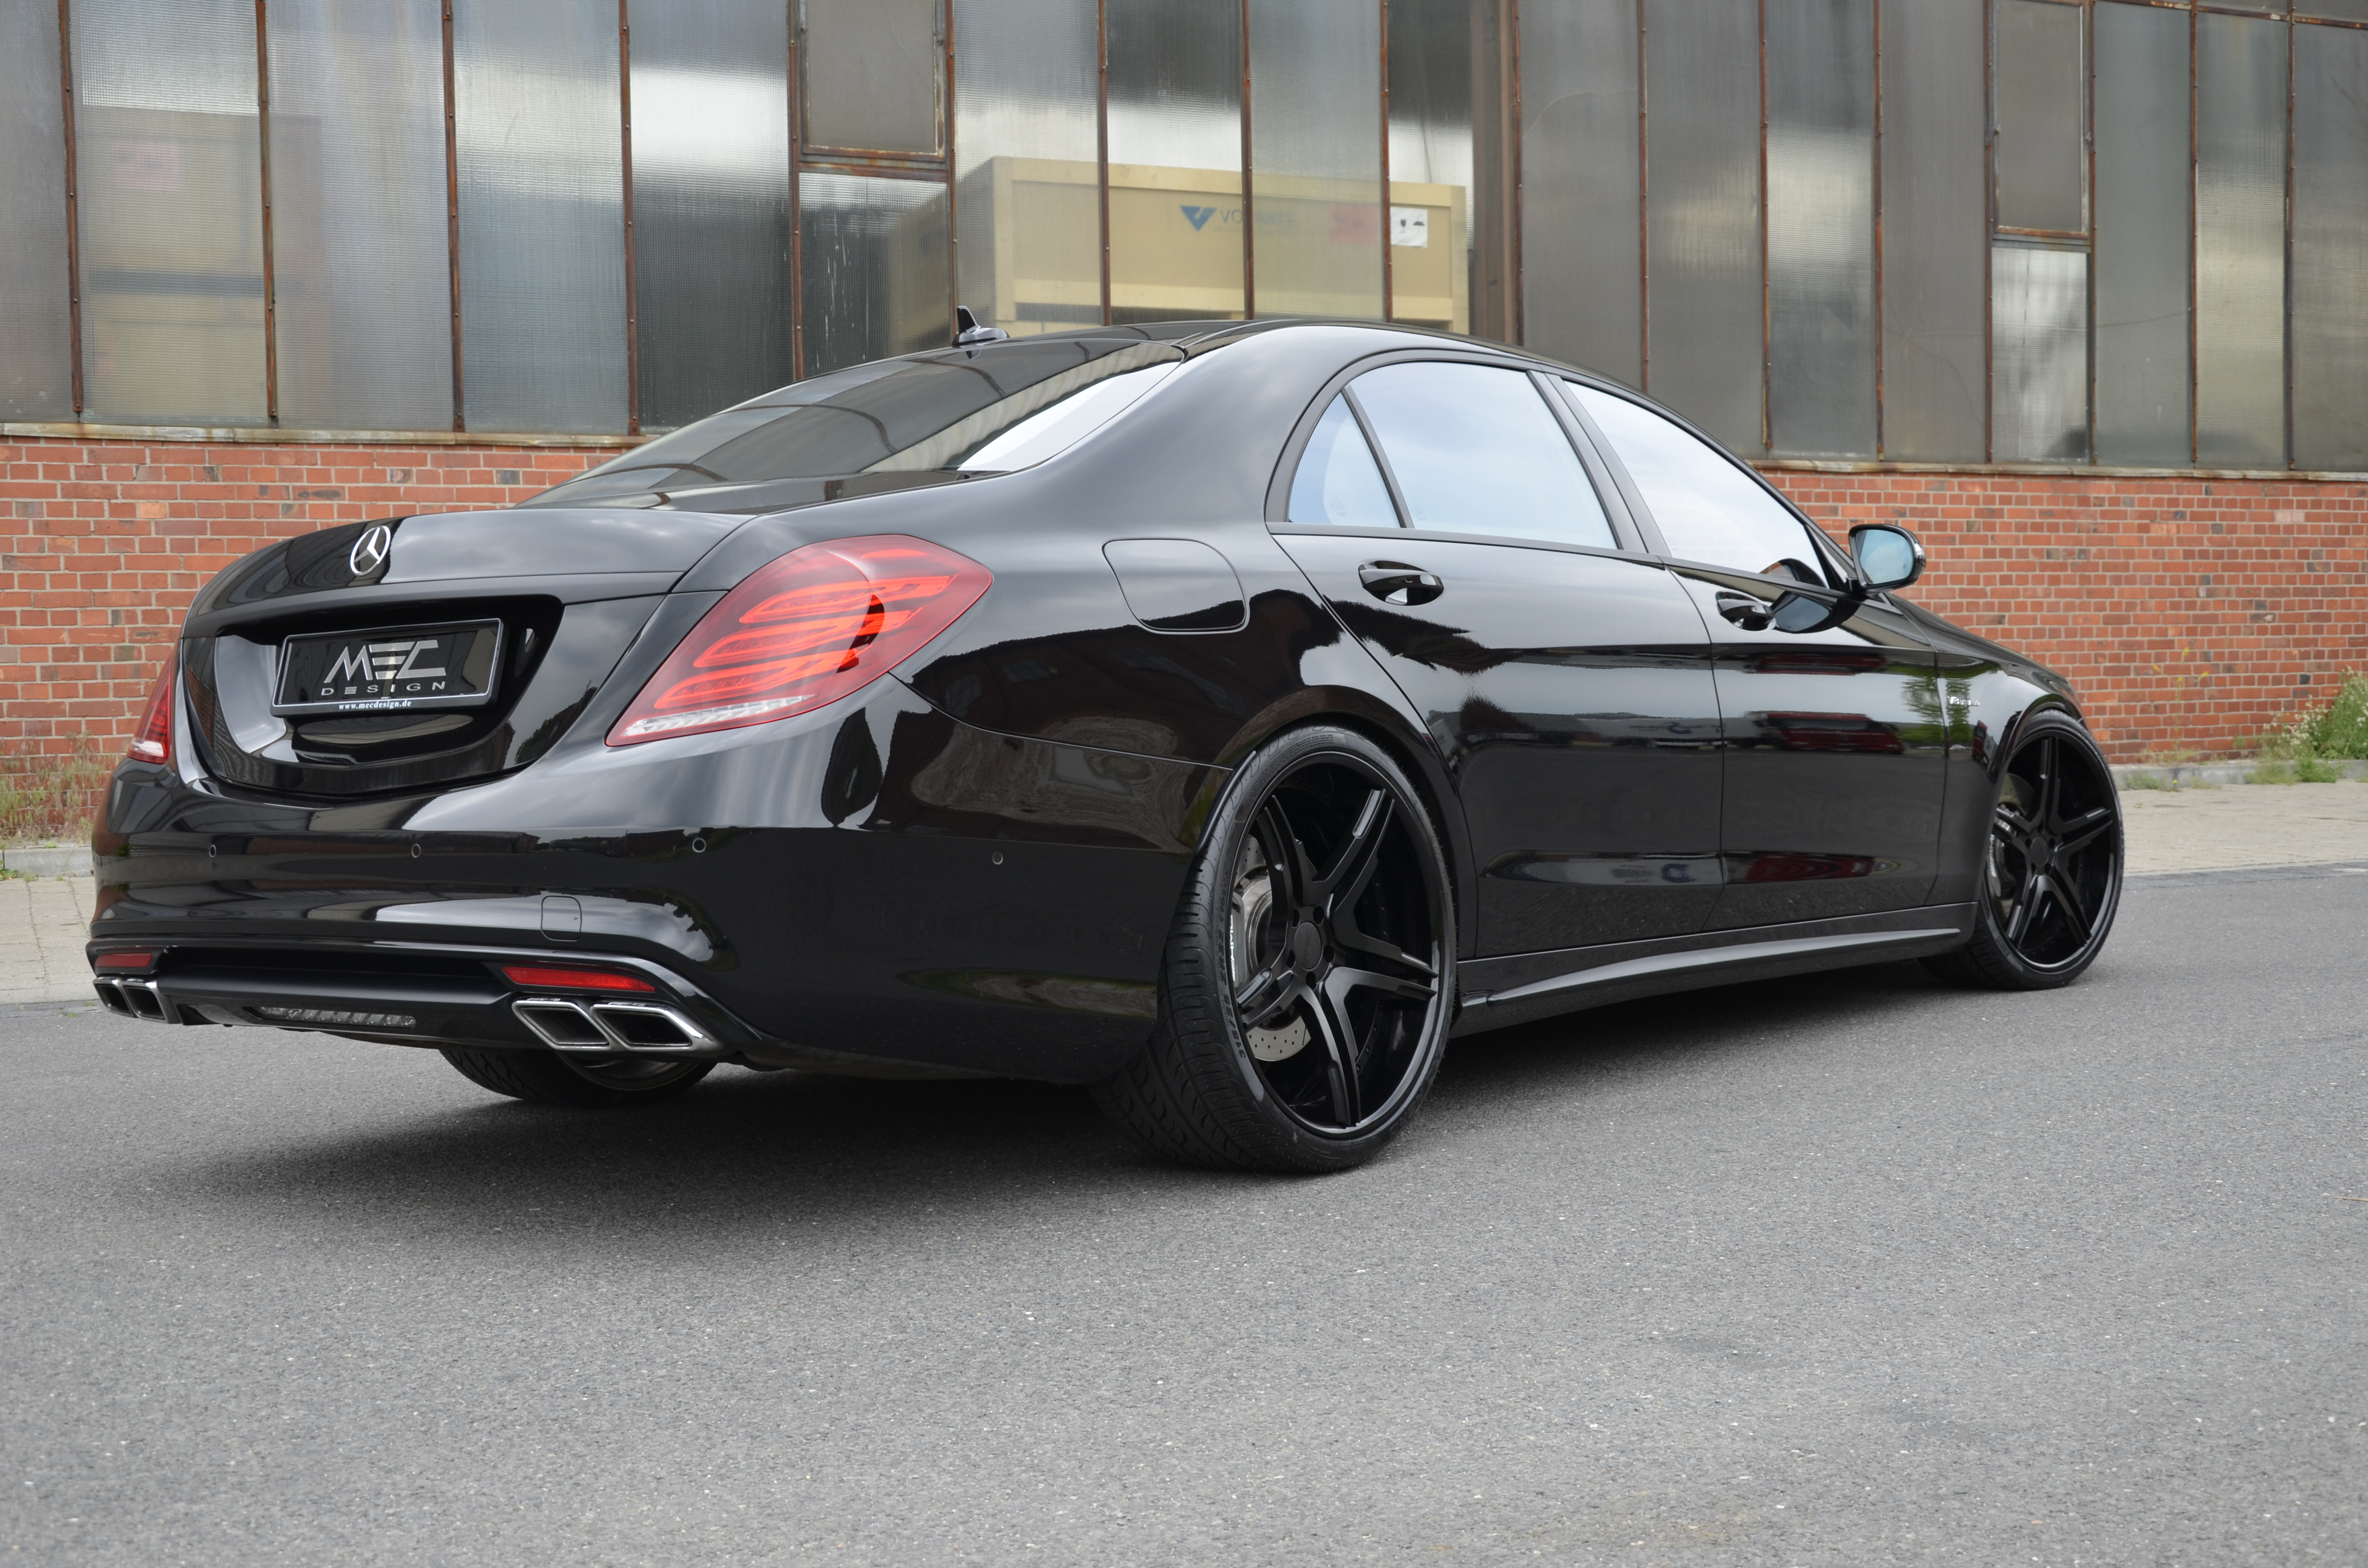 Mec releases customized mercedes s63 amg for Mercedes benz s63 2014 price